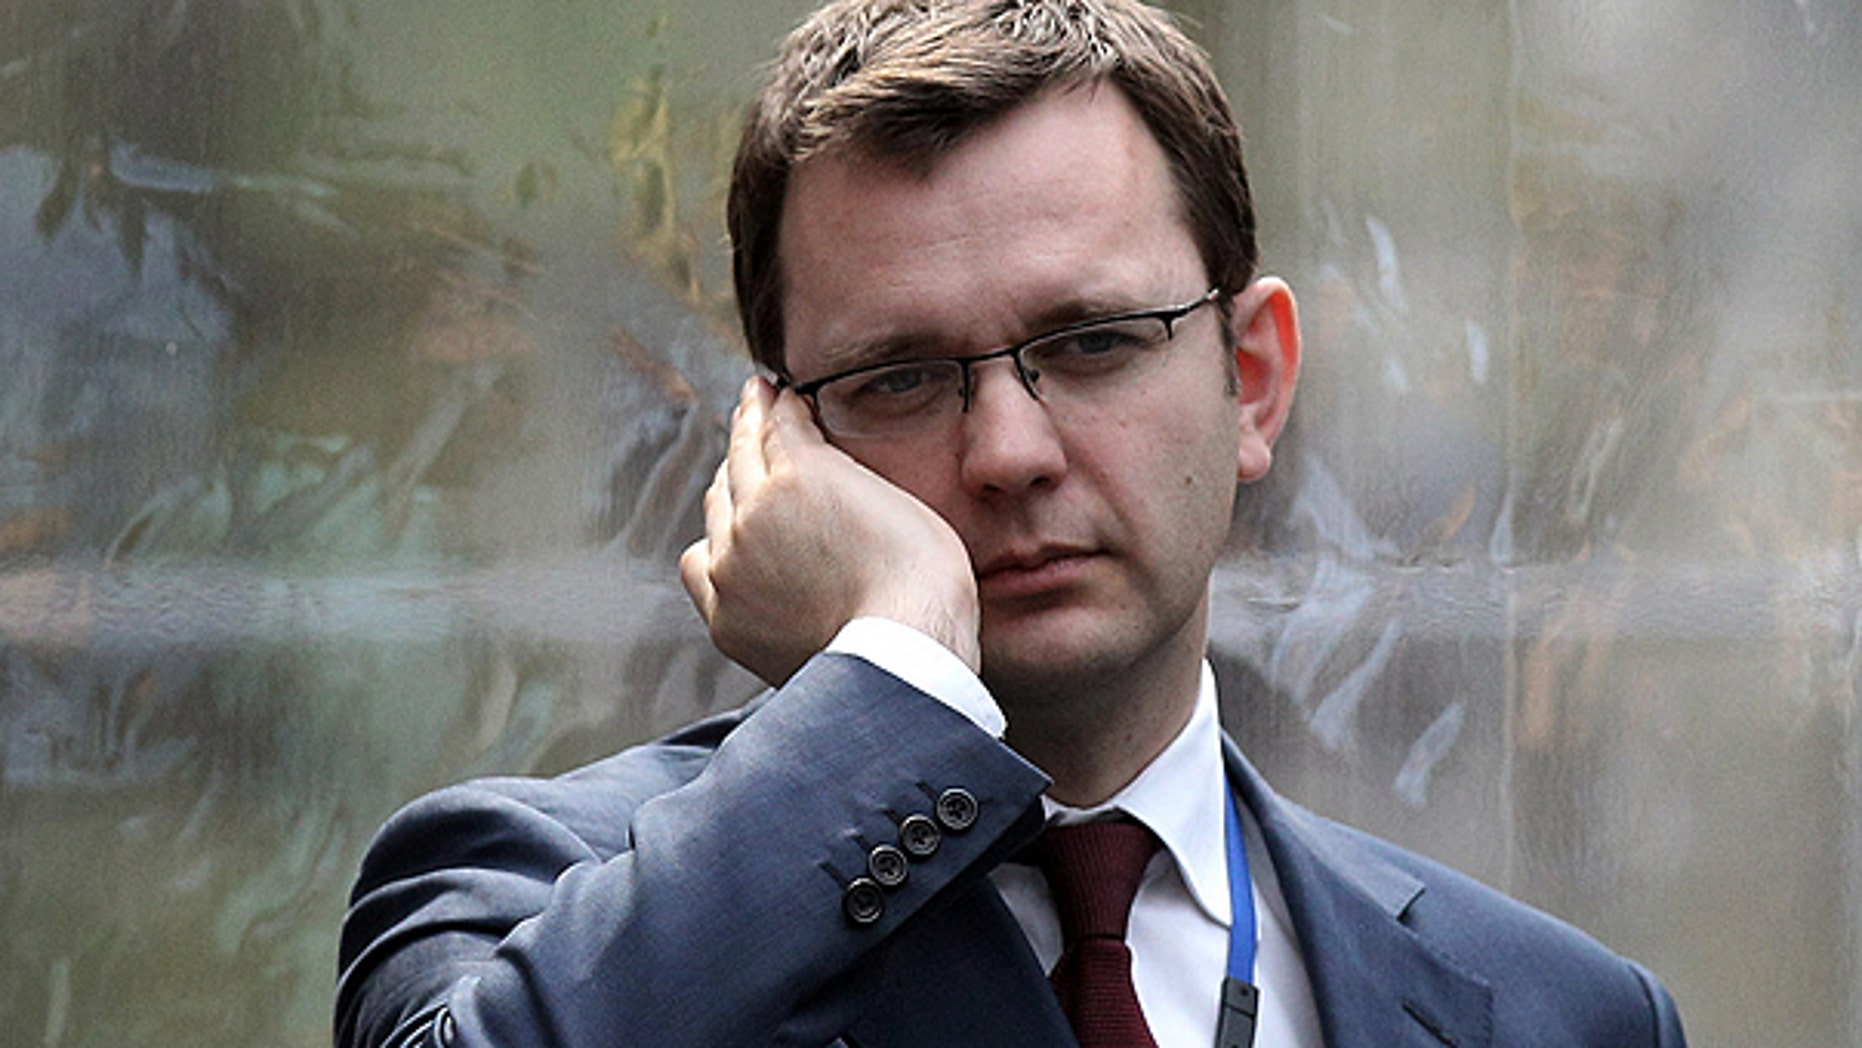 Andy Coulson, formerly editor of the tabloid News of the World, and later David Cameron's director of communications, speaks on a mobile phone in London, in this April 13, 2010, file photo.